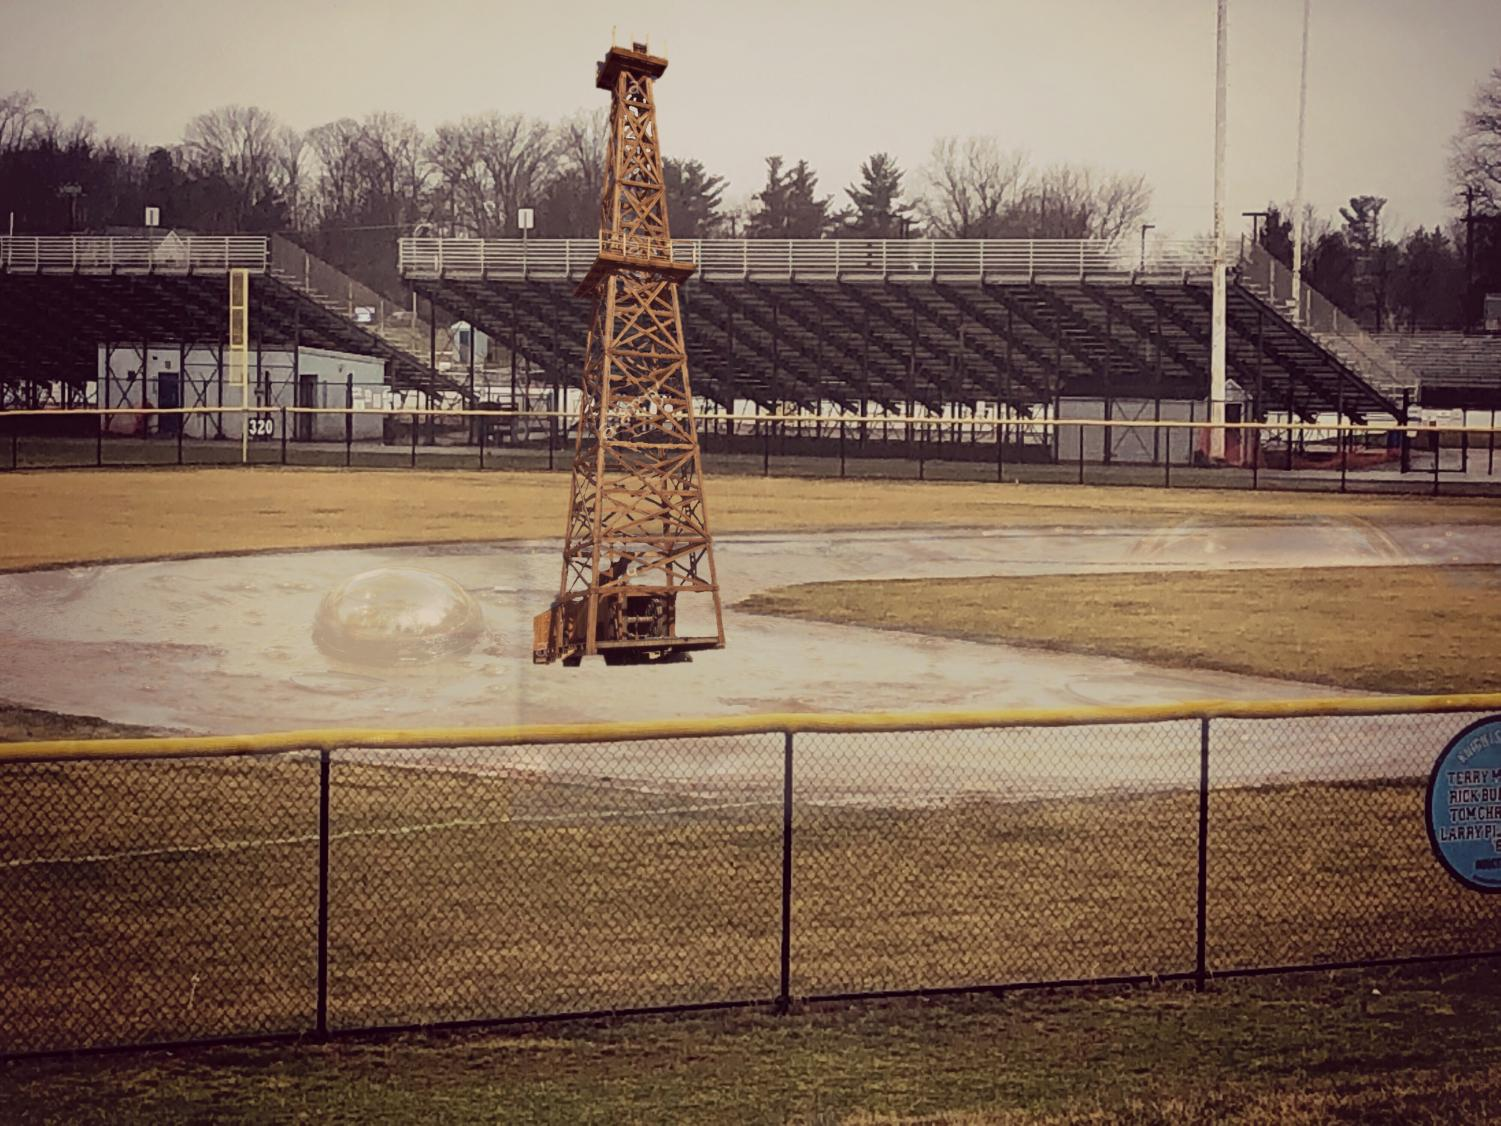 A new oil well has been placed on the NPHS baseball field where bubbling crude has come up from under the surface of the infield dirt